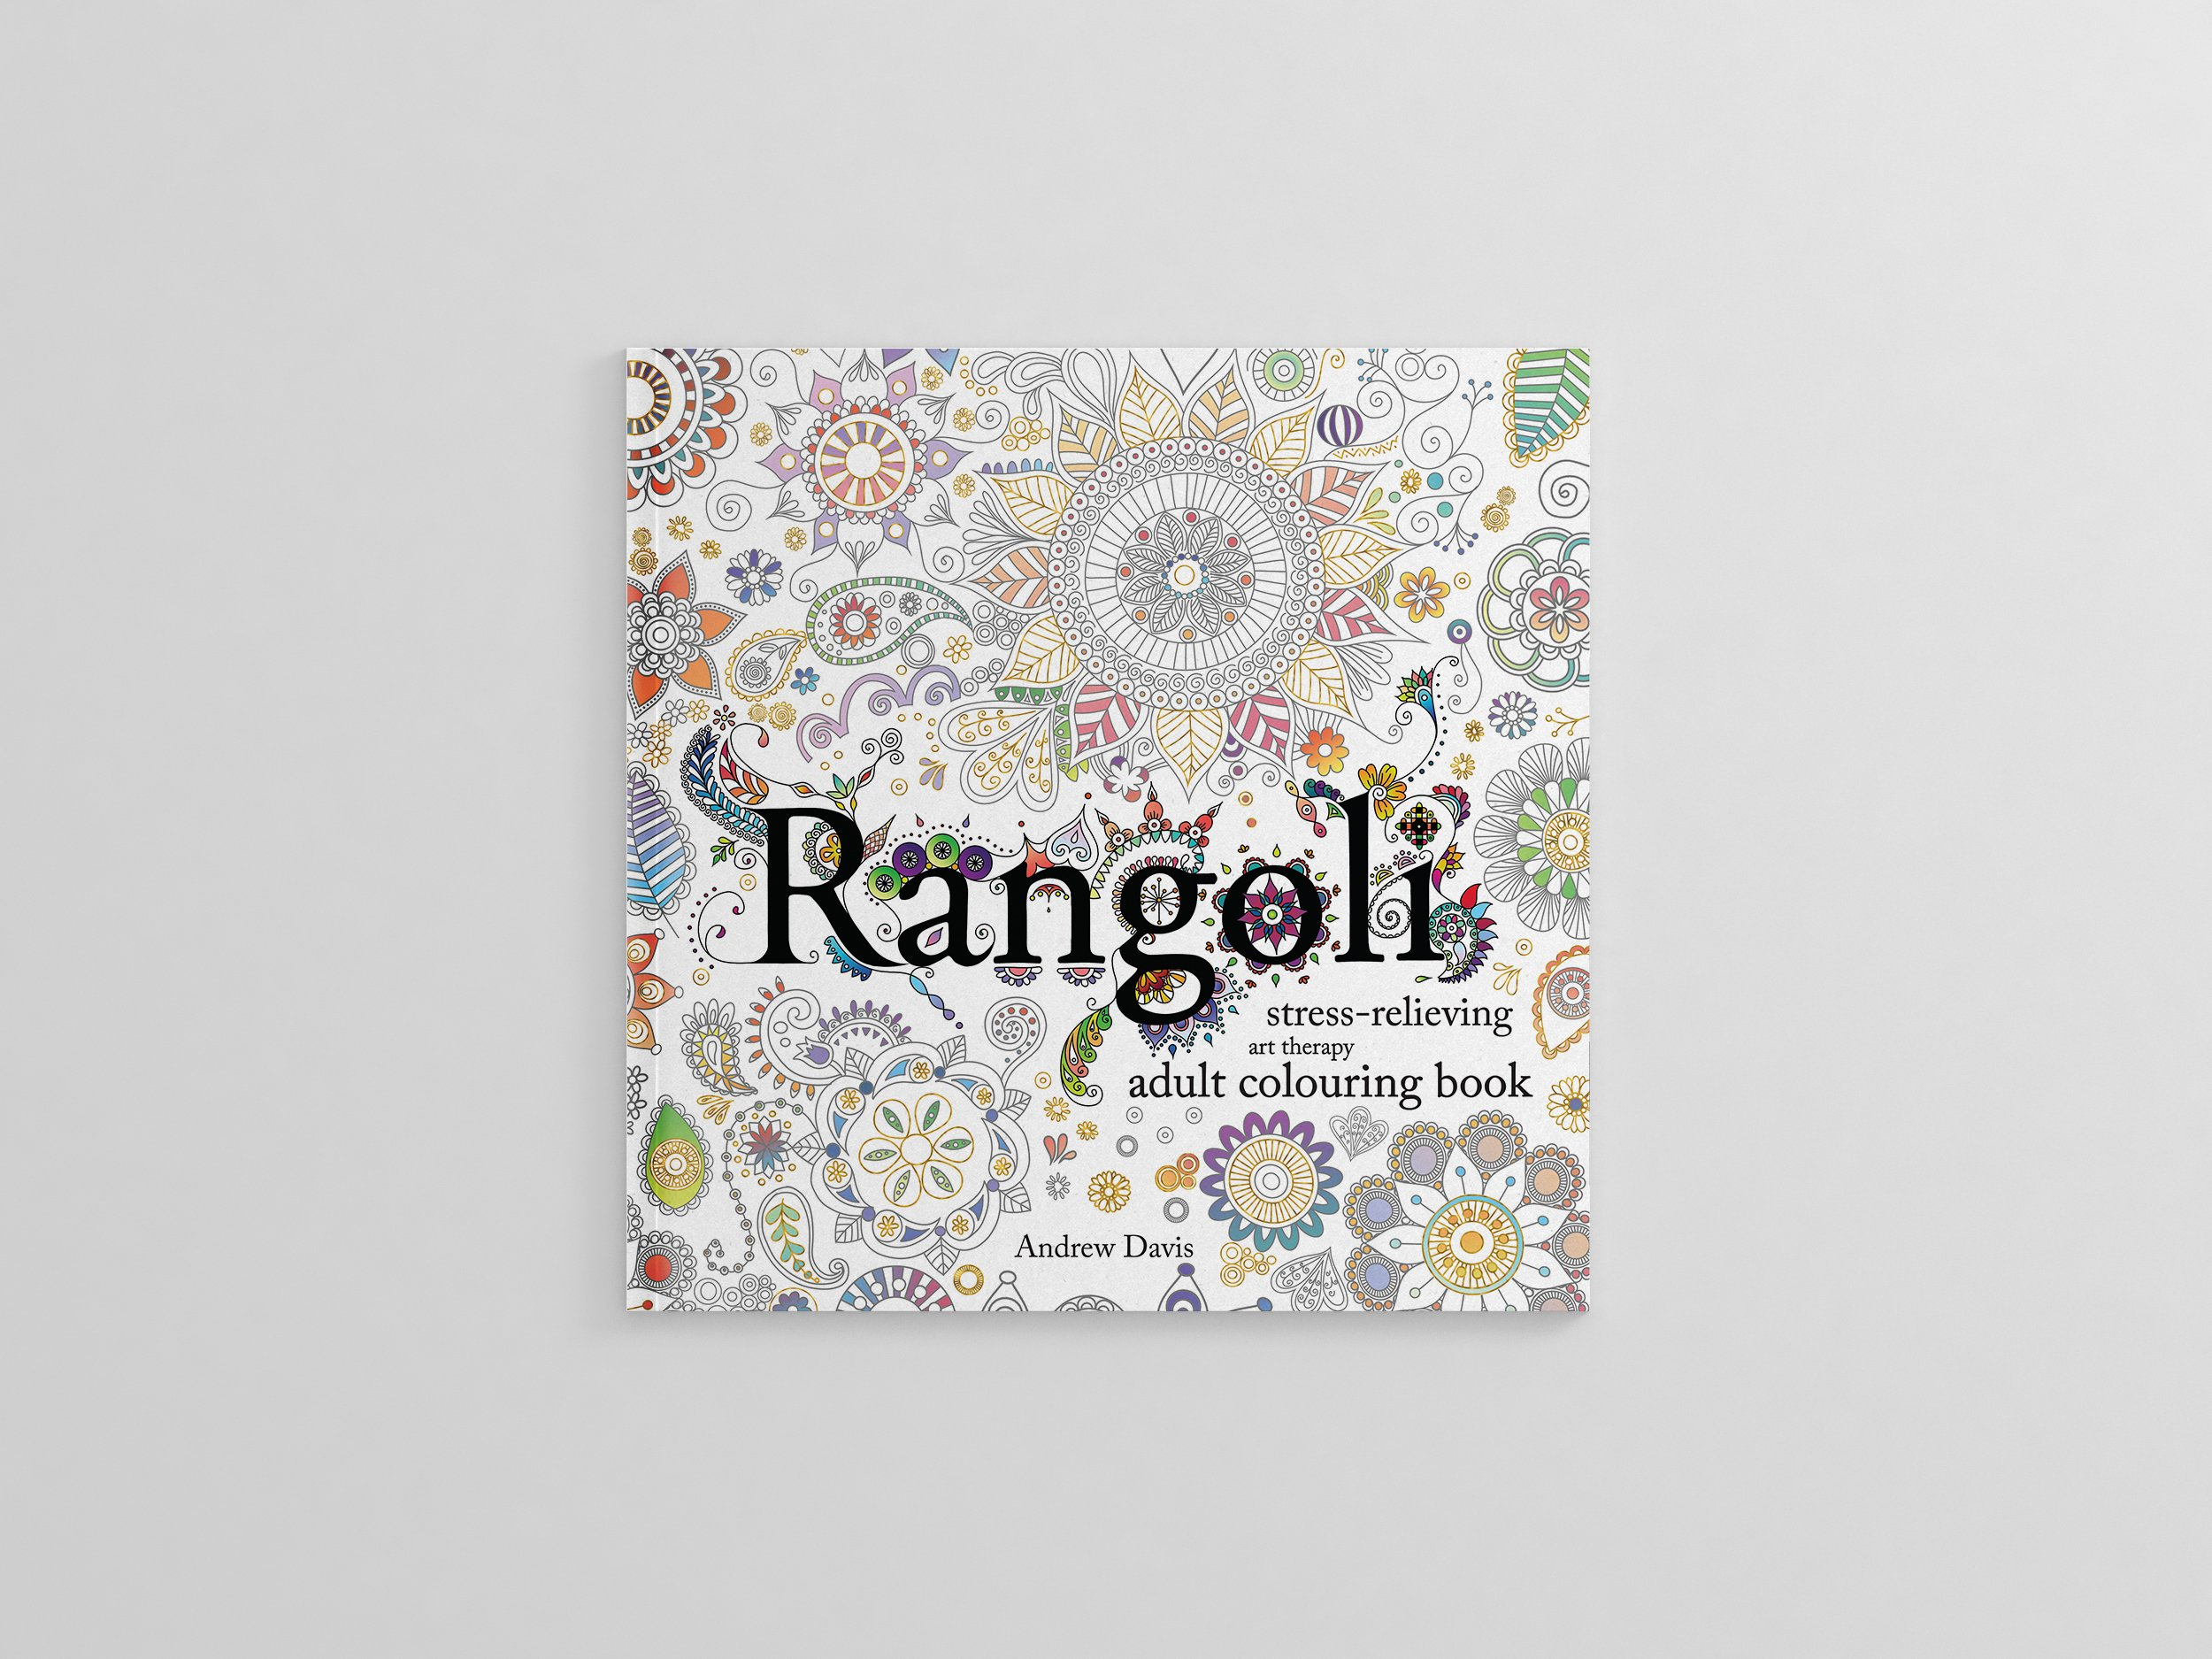 Rangoli Coloring Pages For Adults : Rangoli: stress relieving art therapy adult colouring book: andrew